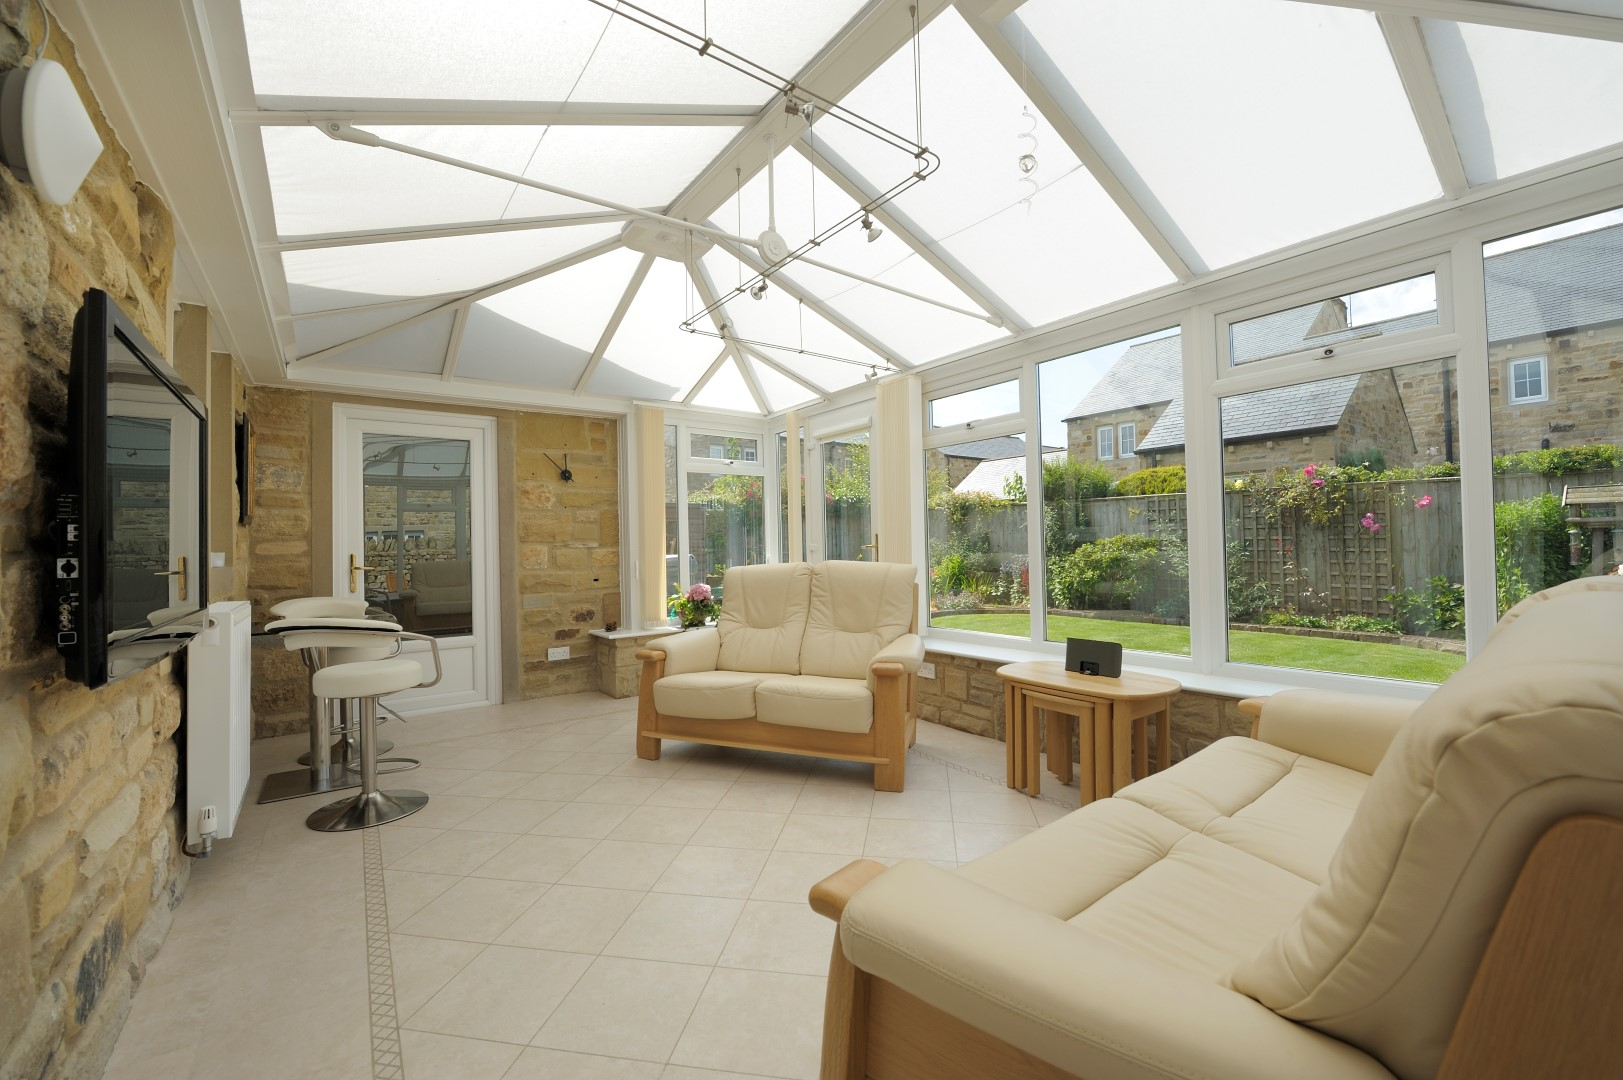 White PVCU glazed roof